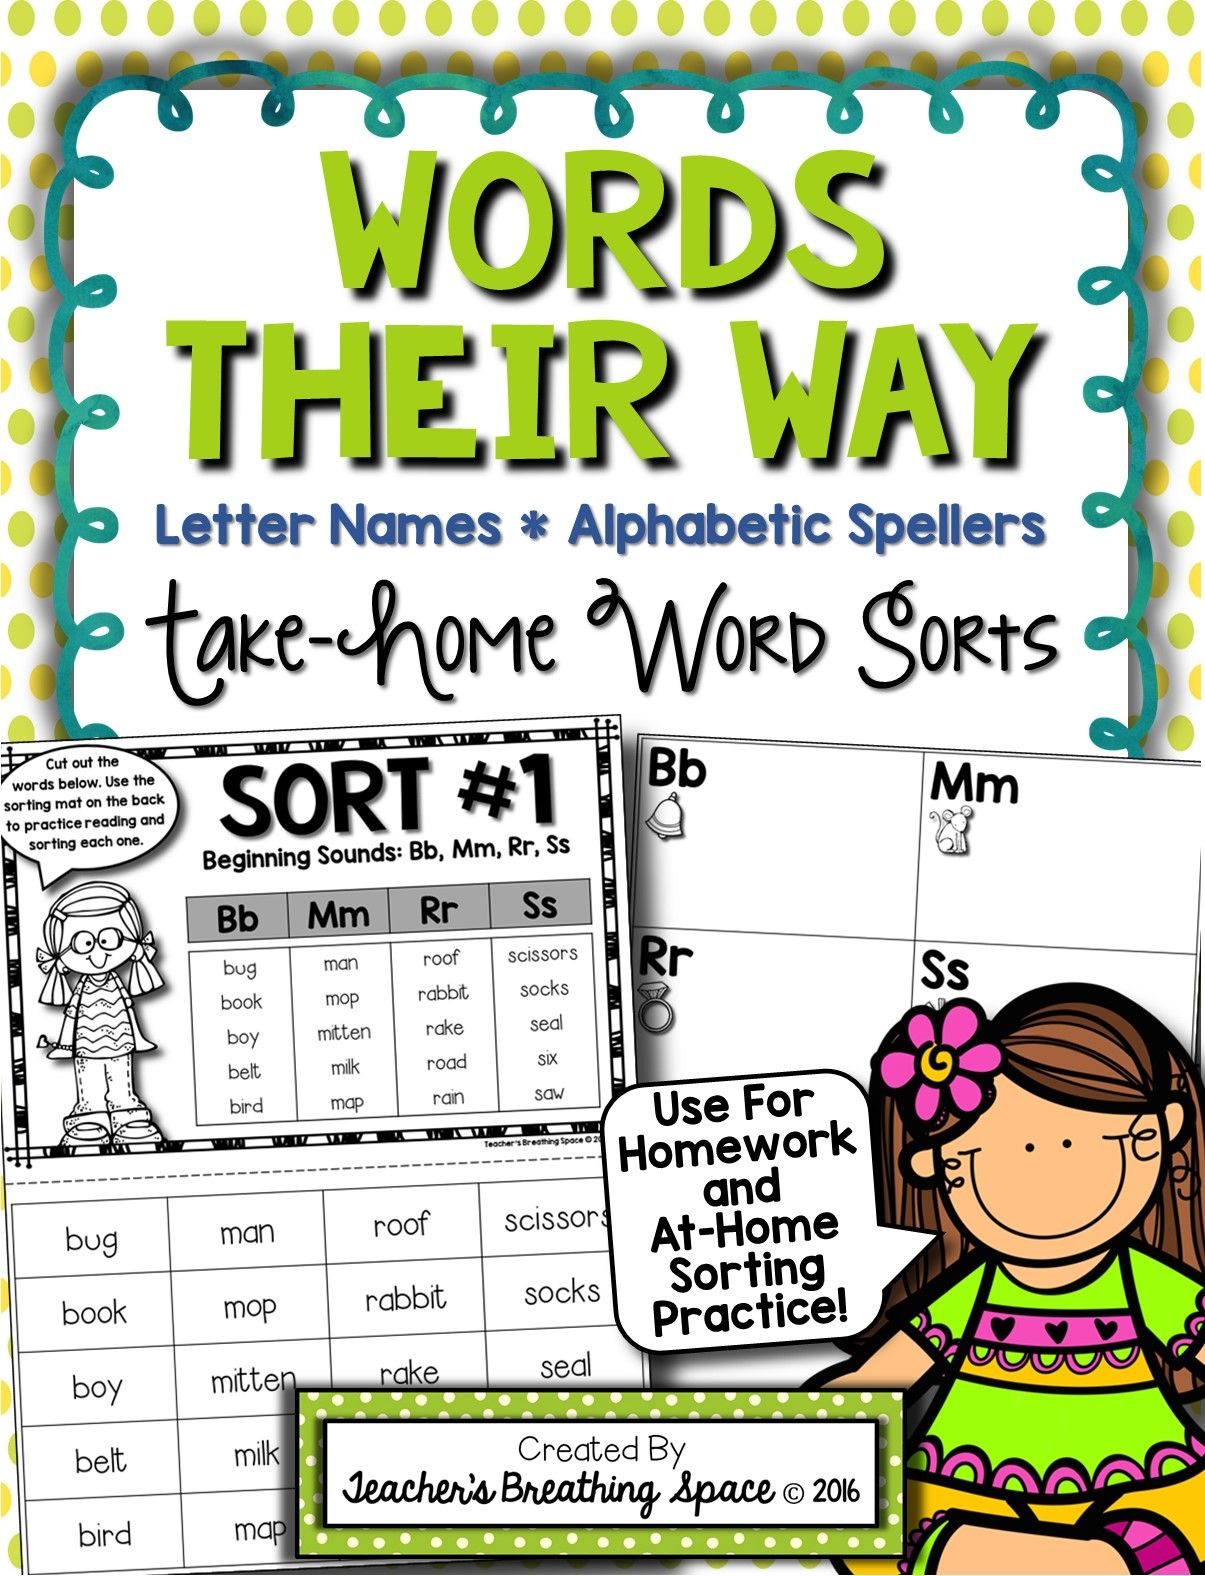 Words Their Way Letter Name Alphabetic Spellers Take Home Word Sorts For All Sorts 1 50